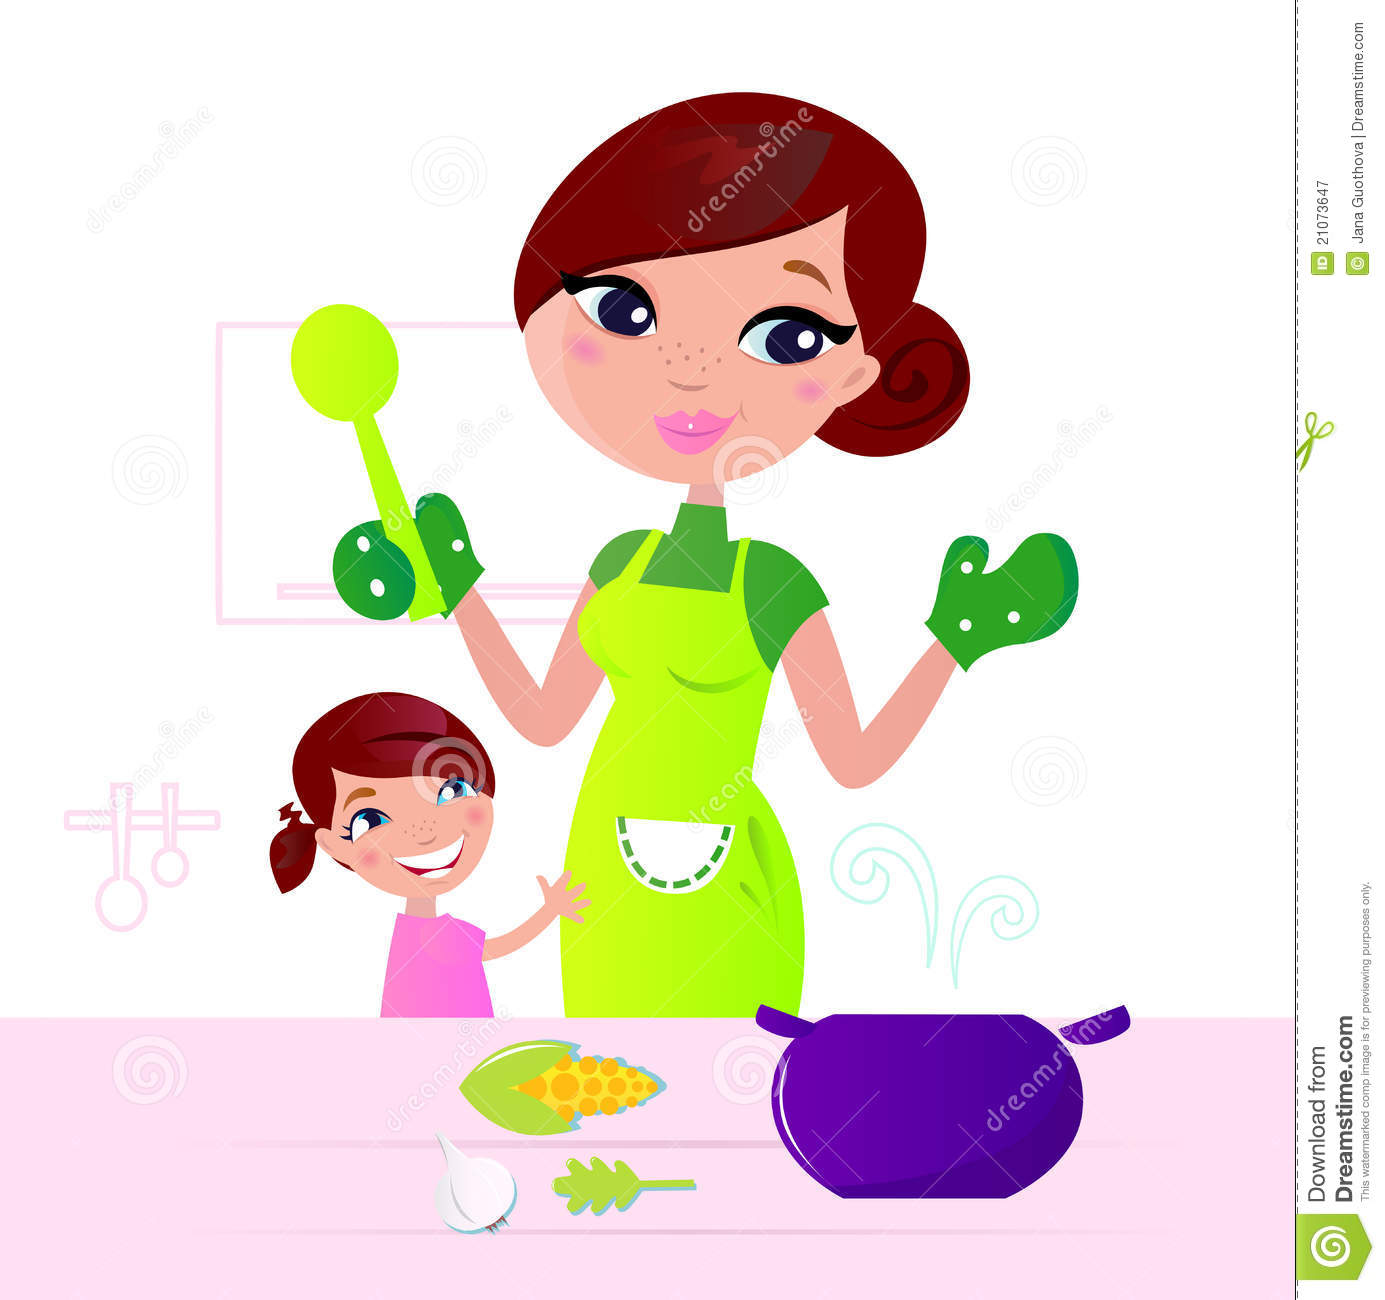 Baking clipart food preparation Clipart Clipart Images Cooking Mother